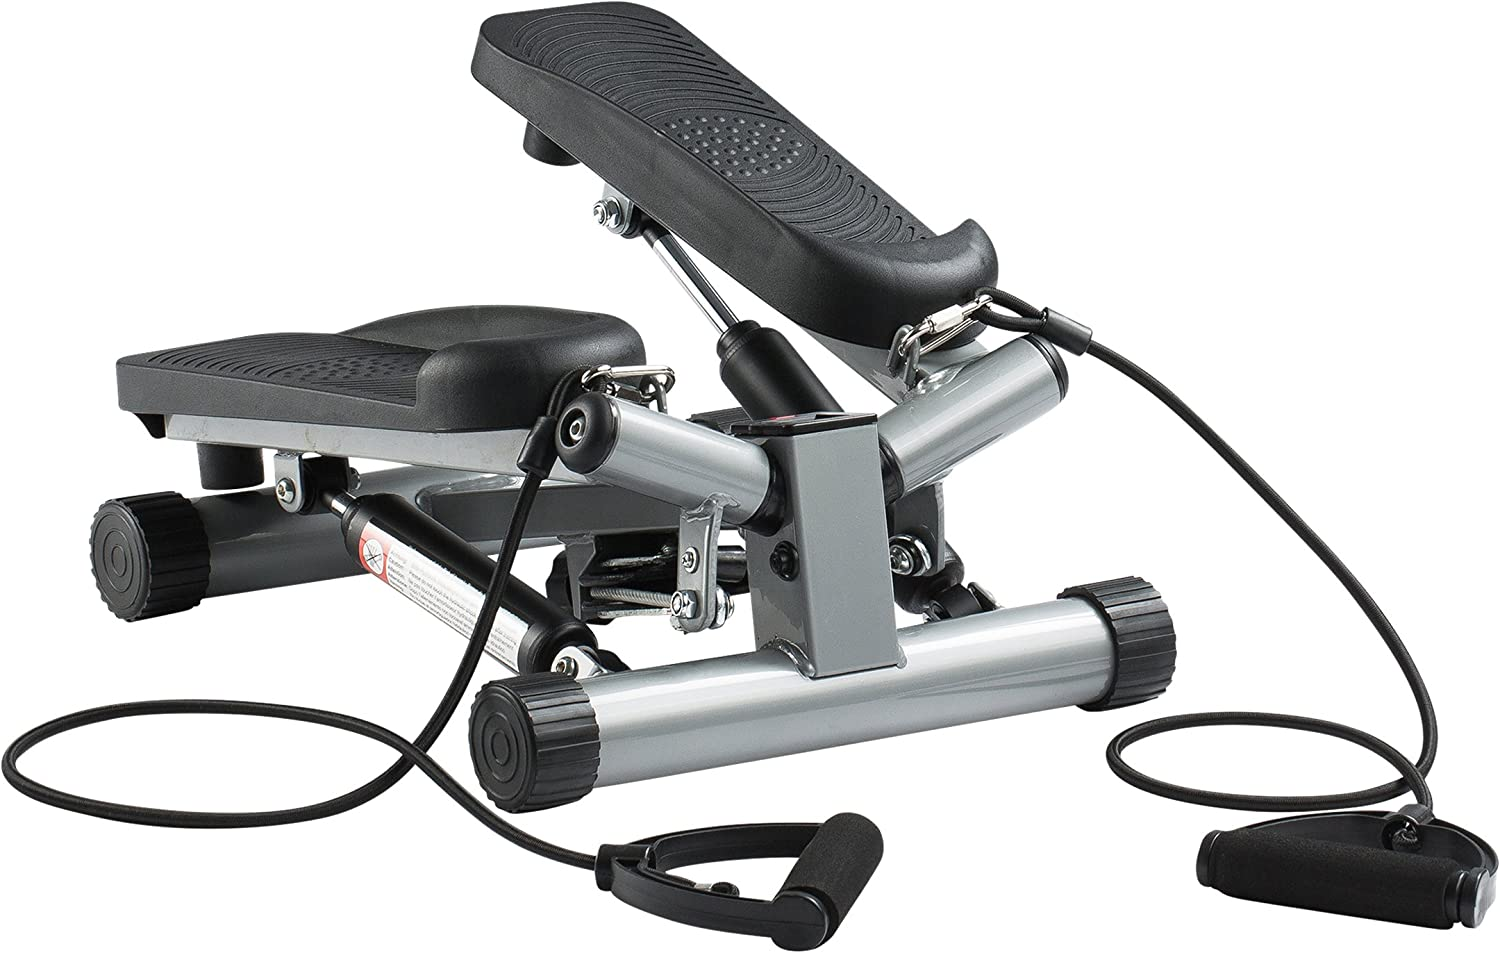 Ultrasport Swing Stepper inklusive Trainingsbändern / Hometrainer Stepper mit kabellosem Trainingscomputer - Up-Down-Stepper für Einsteiger und Trainierte - Mini Stepper